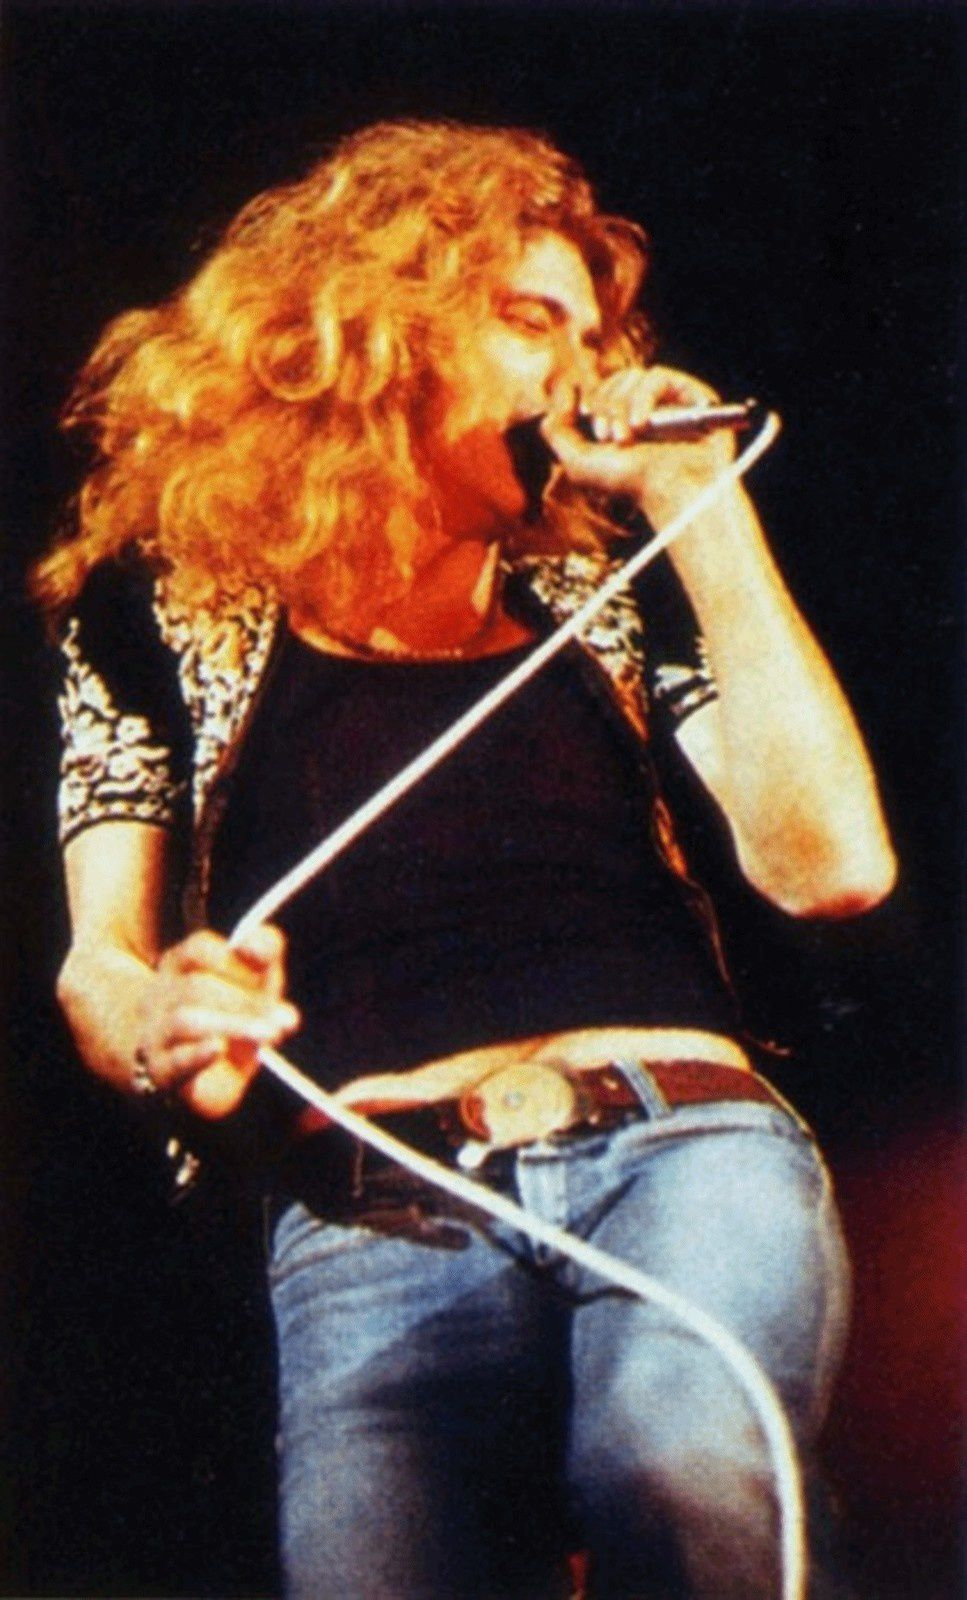 Robert Plant - On stage